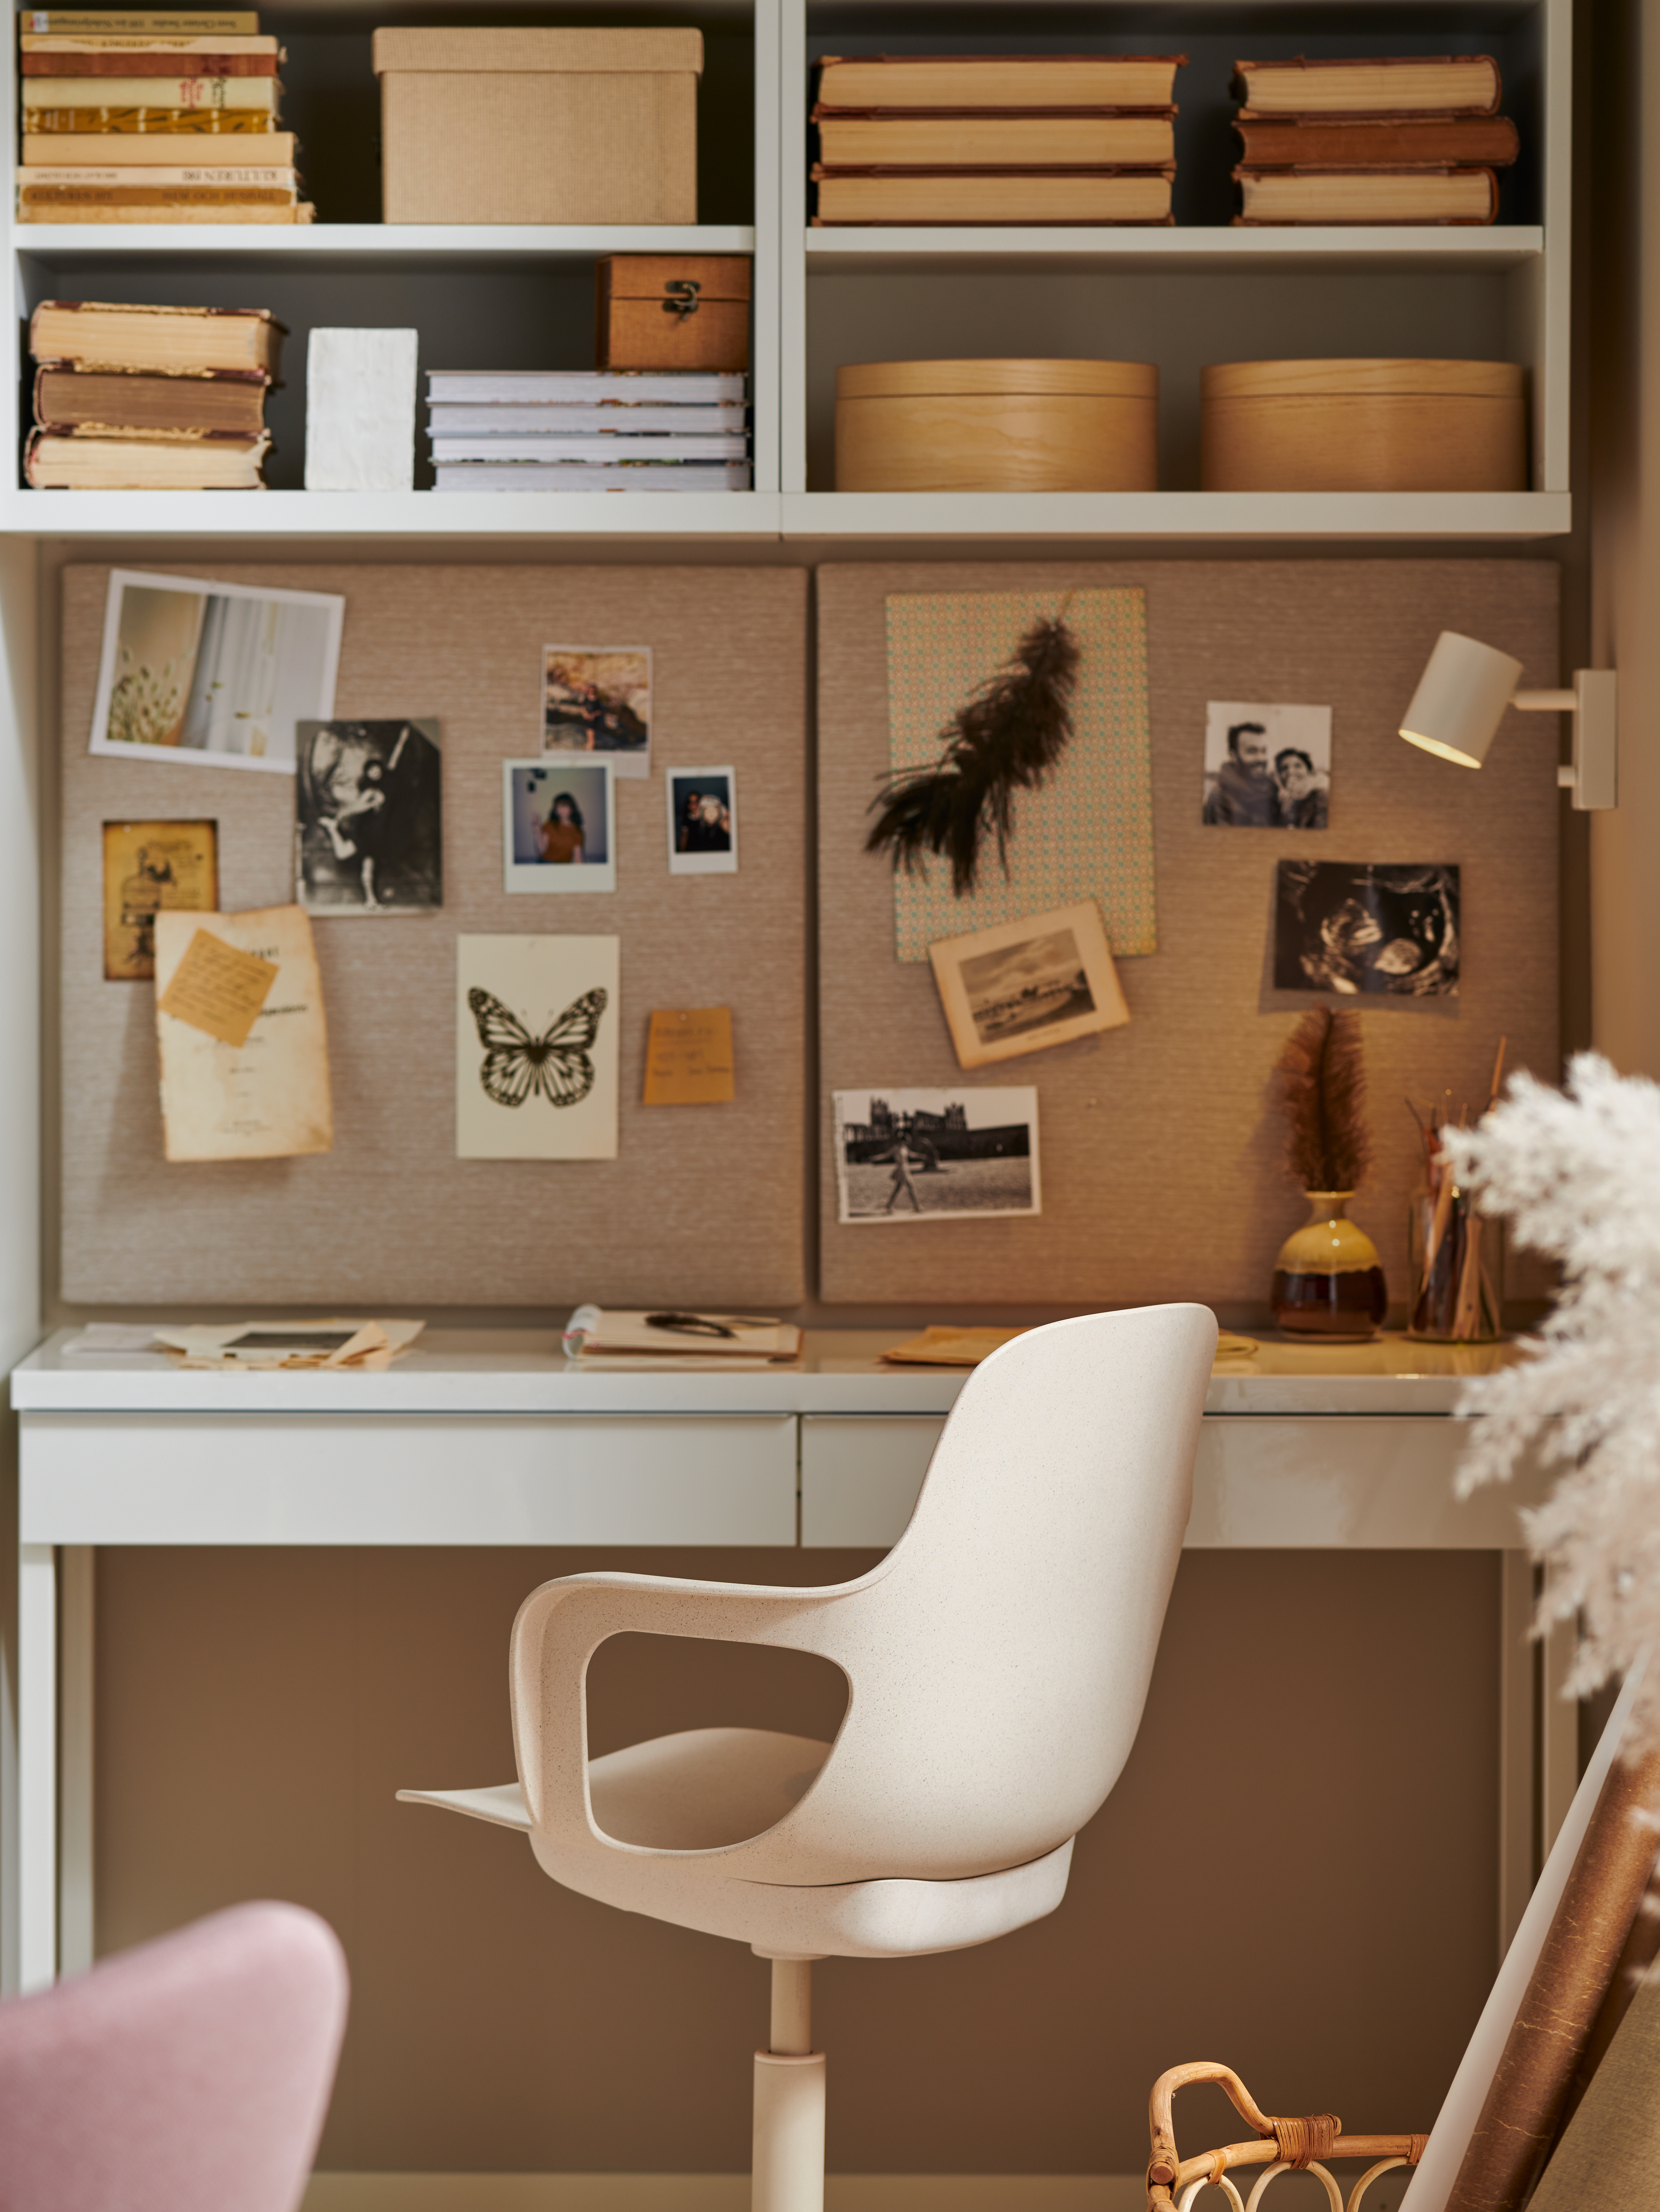 A workspace with a high-gloss white BESTÅ BURS desk, a swivel chair, two memo boards with pins, books, boxes and photos.